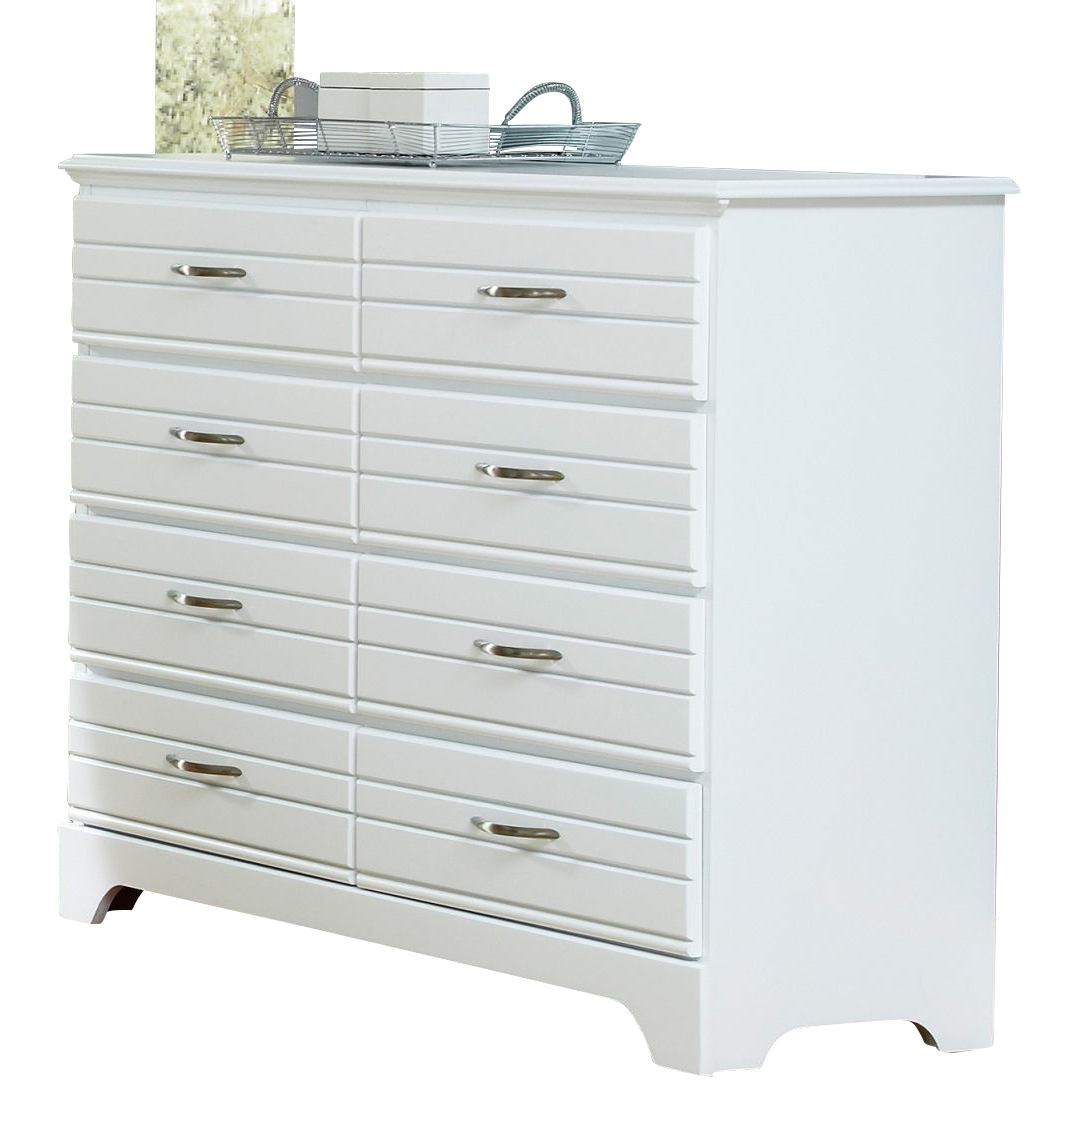 Carolina Furniture Platinum Tall Dresser in White 515800